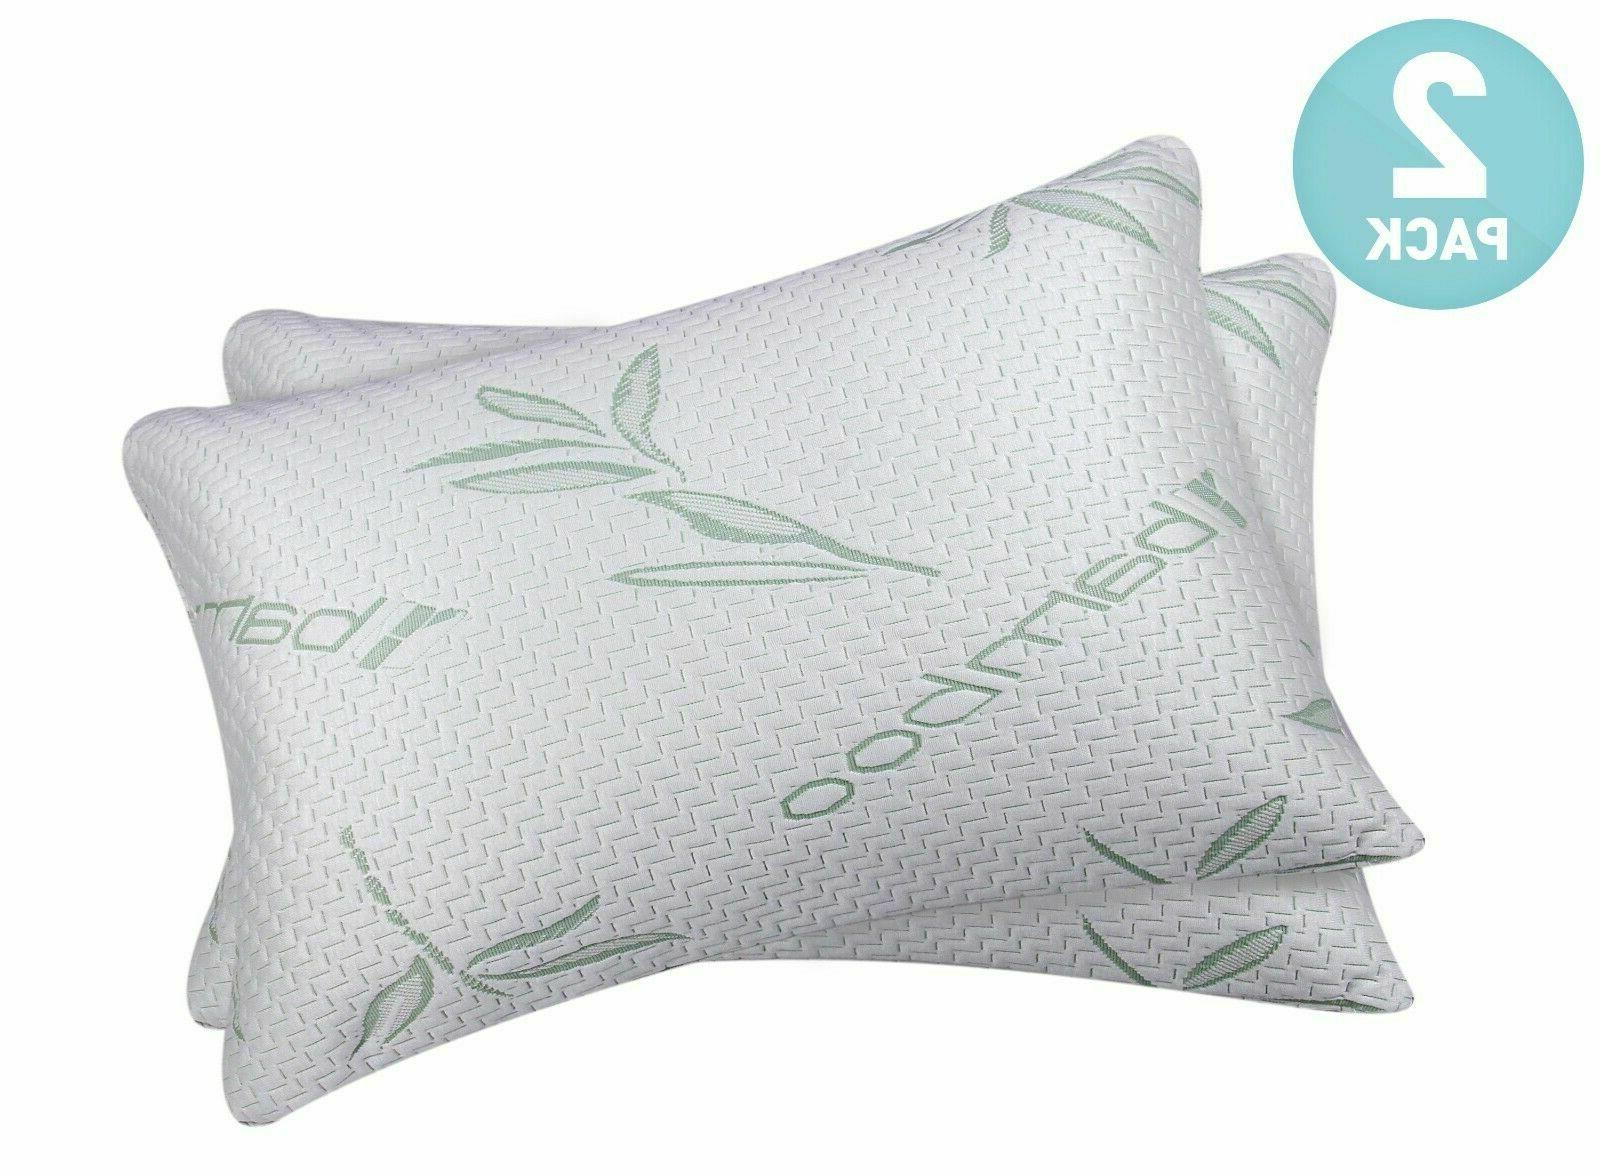 Bamboo Shredded Memory Foam Bed Pillows Hypoallergenic Cove